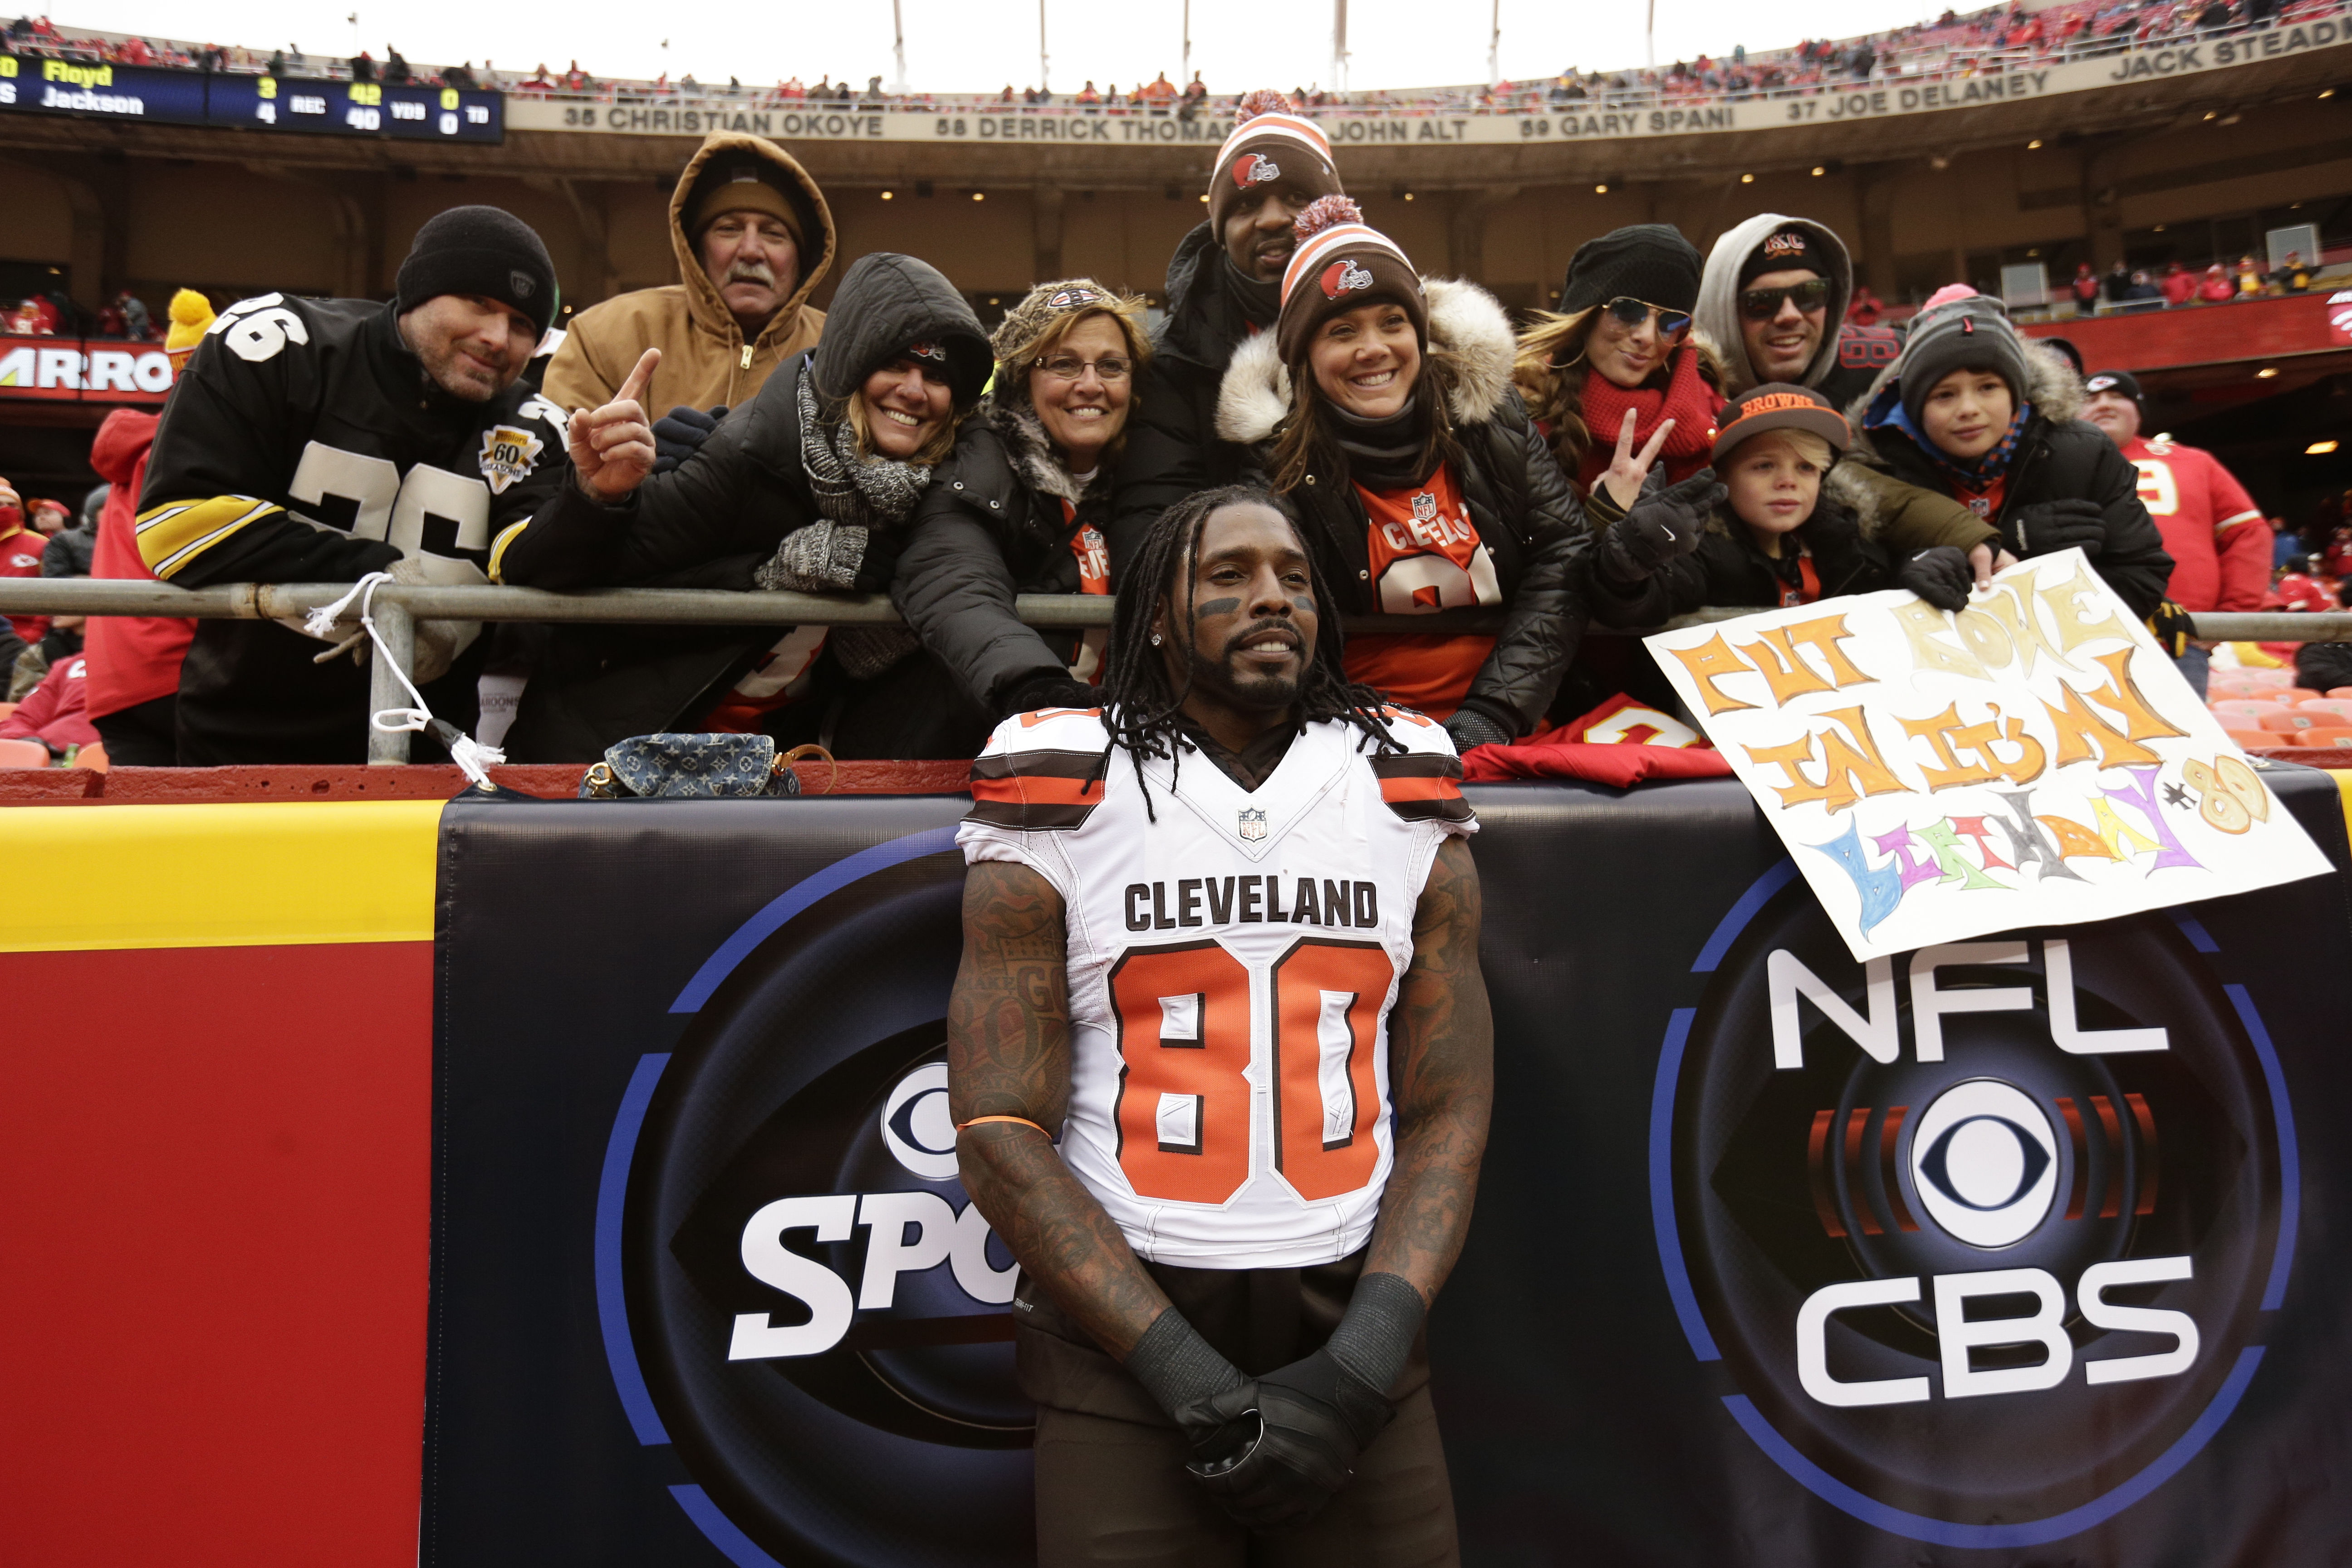 Cleveland Browns wide receiver Dwayne Bowe (80), a former Chiefs player, takes a photo with fans before an NFL football game against the Kansas City Chiefs in Kansas City, Mo., Sunday, Dec. 27, 2015. (AP Photo/Charlie Riedel)